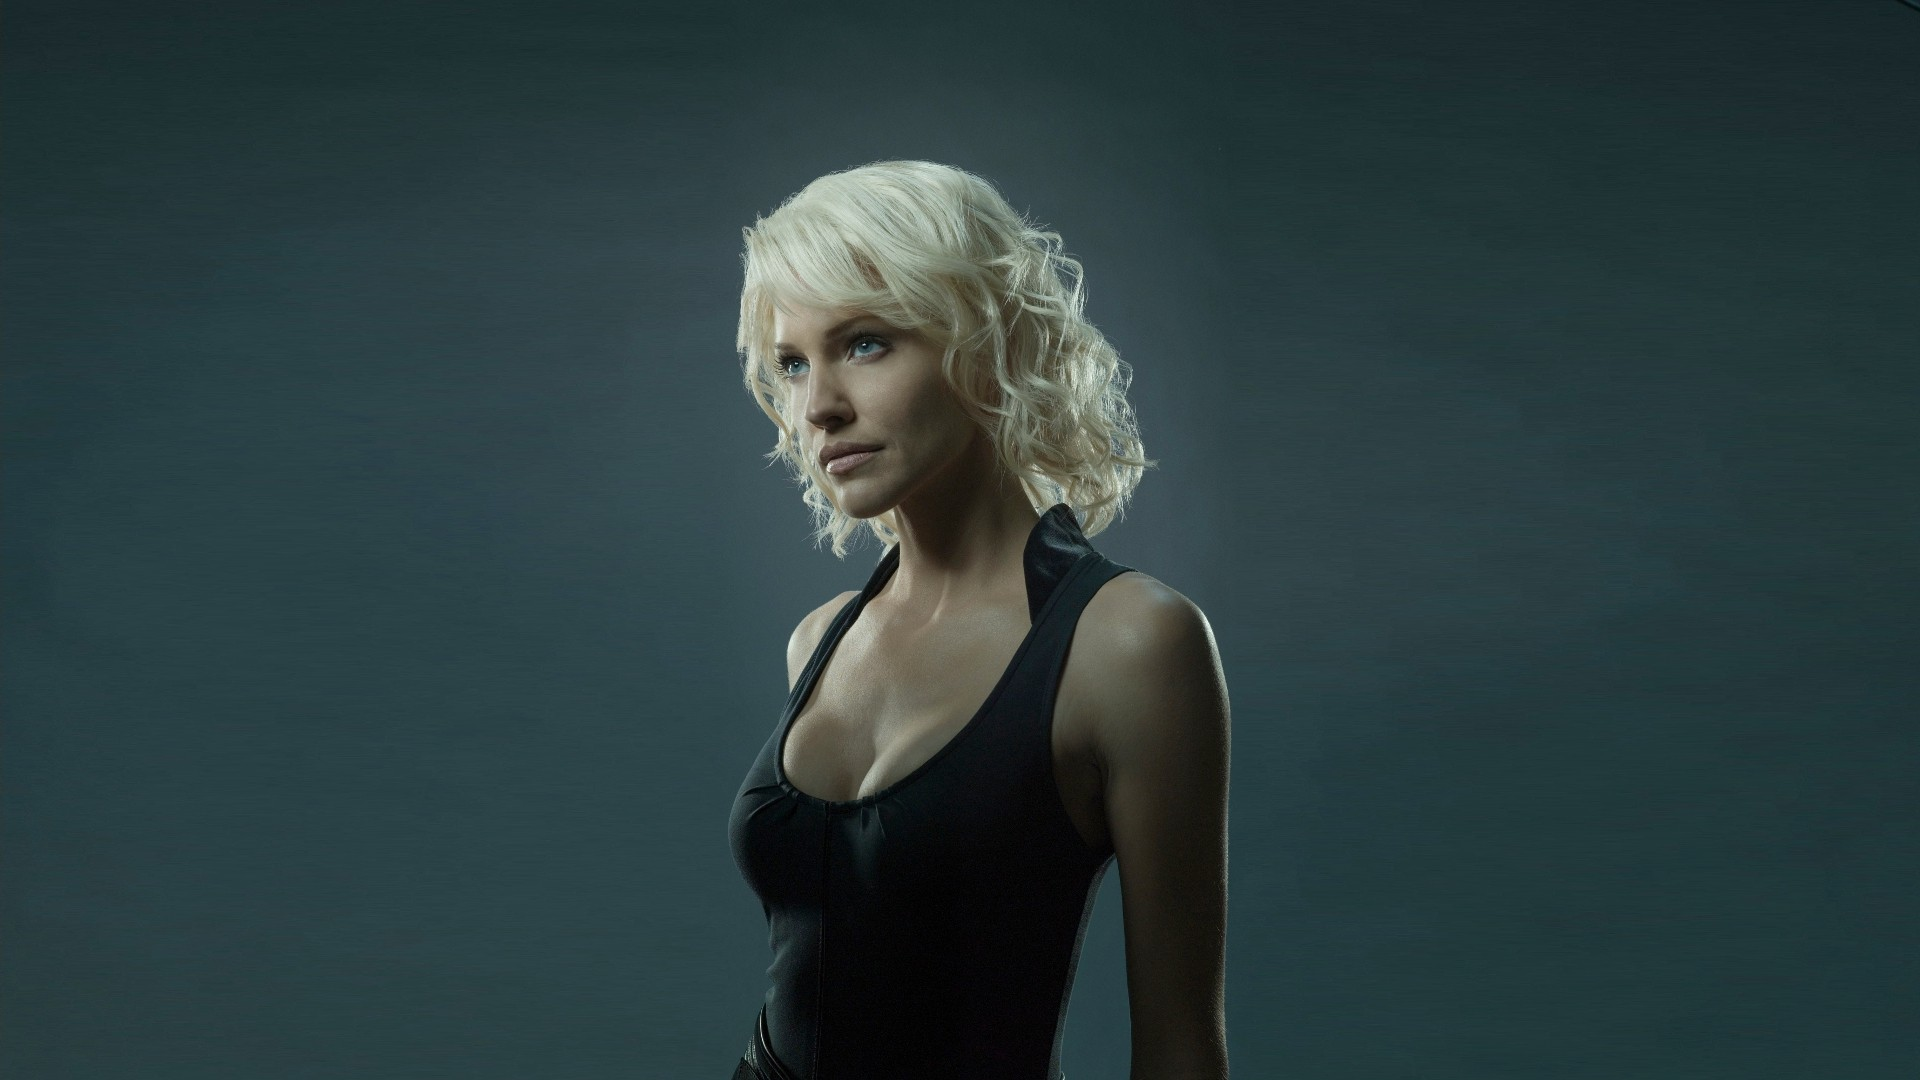 blondes woman battlestar galactica HD Wallpaper